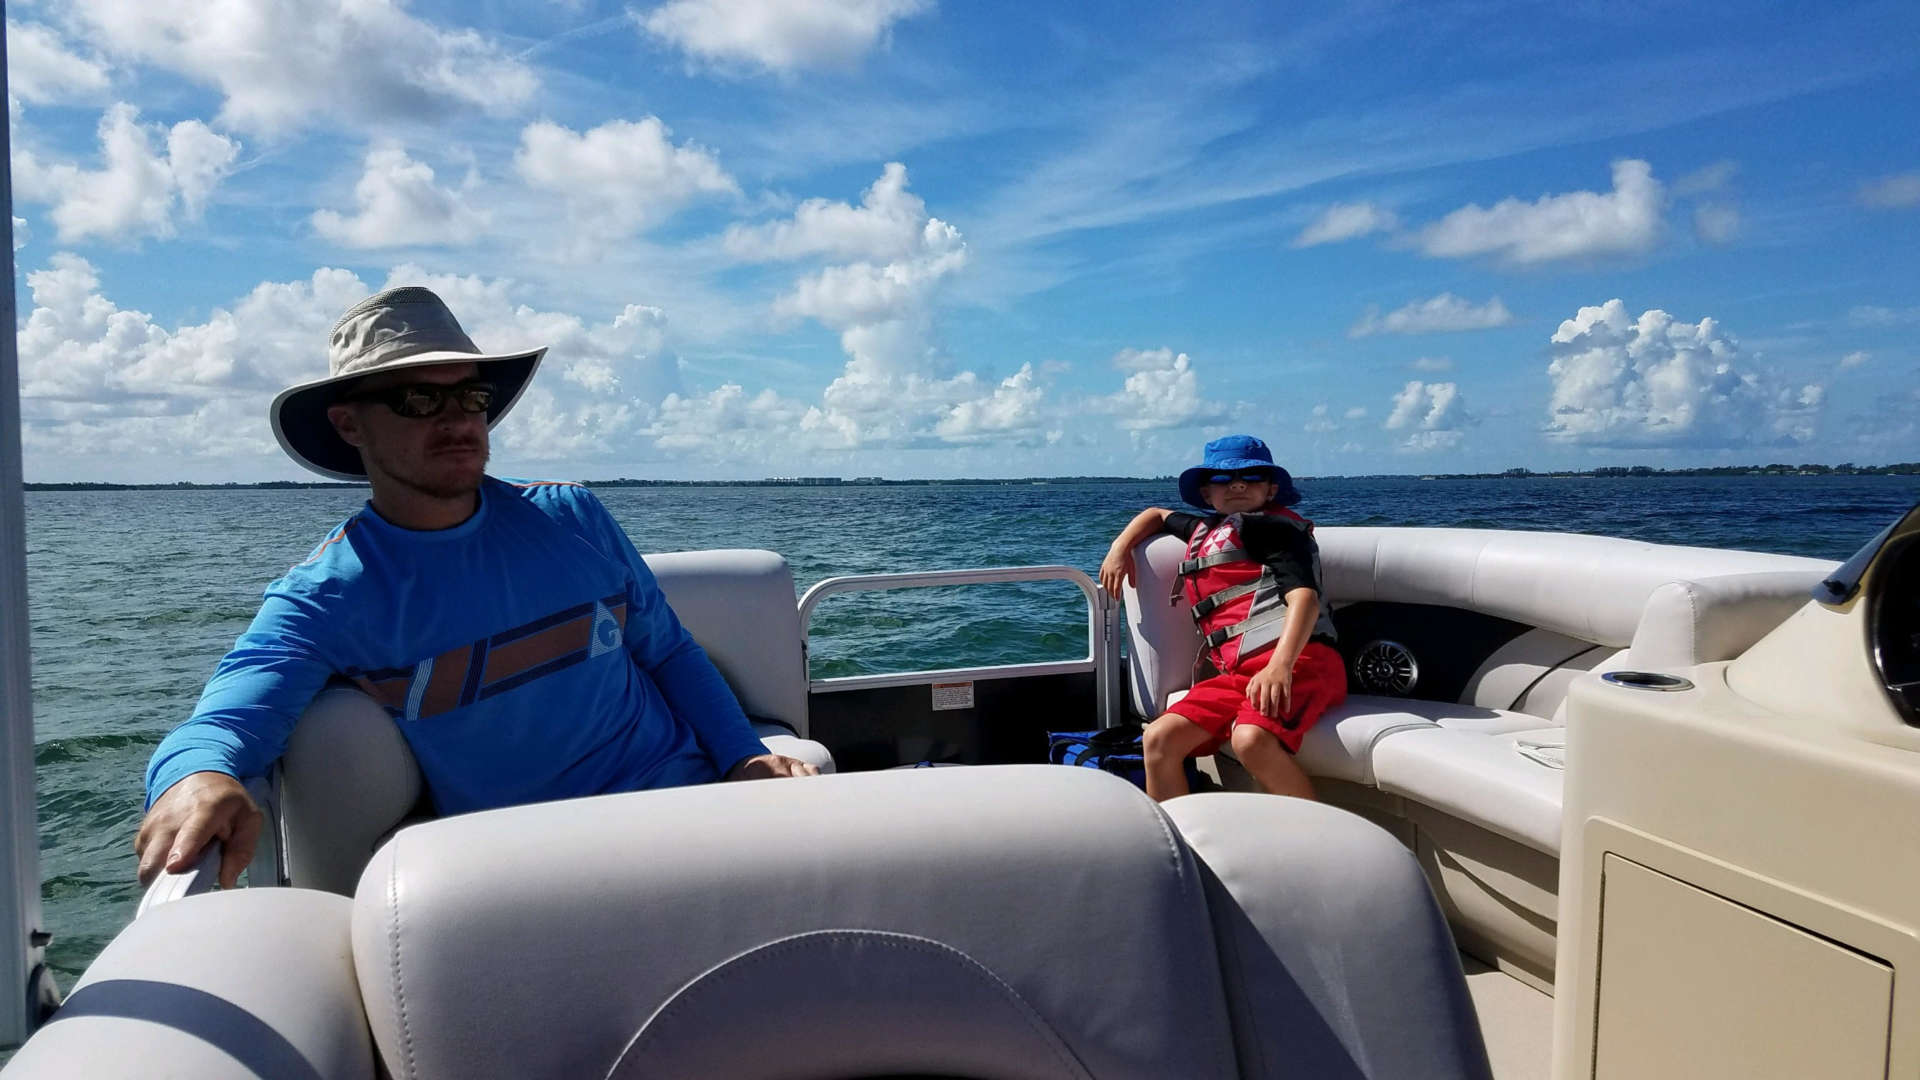 Having a cool time out on the water